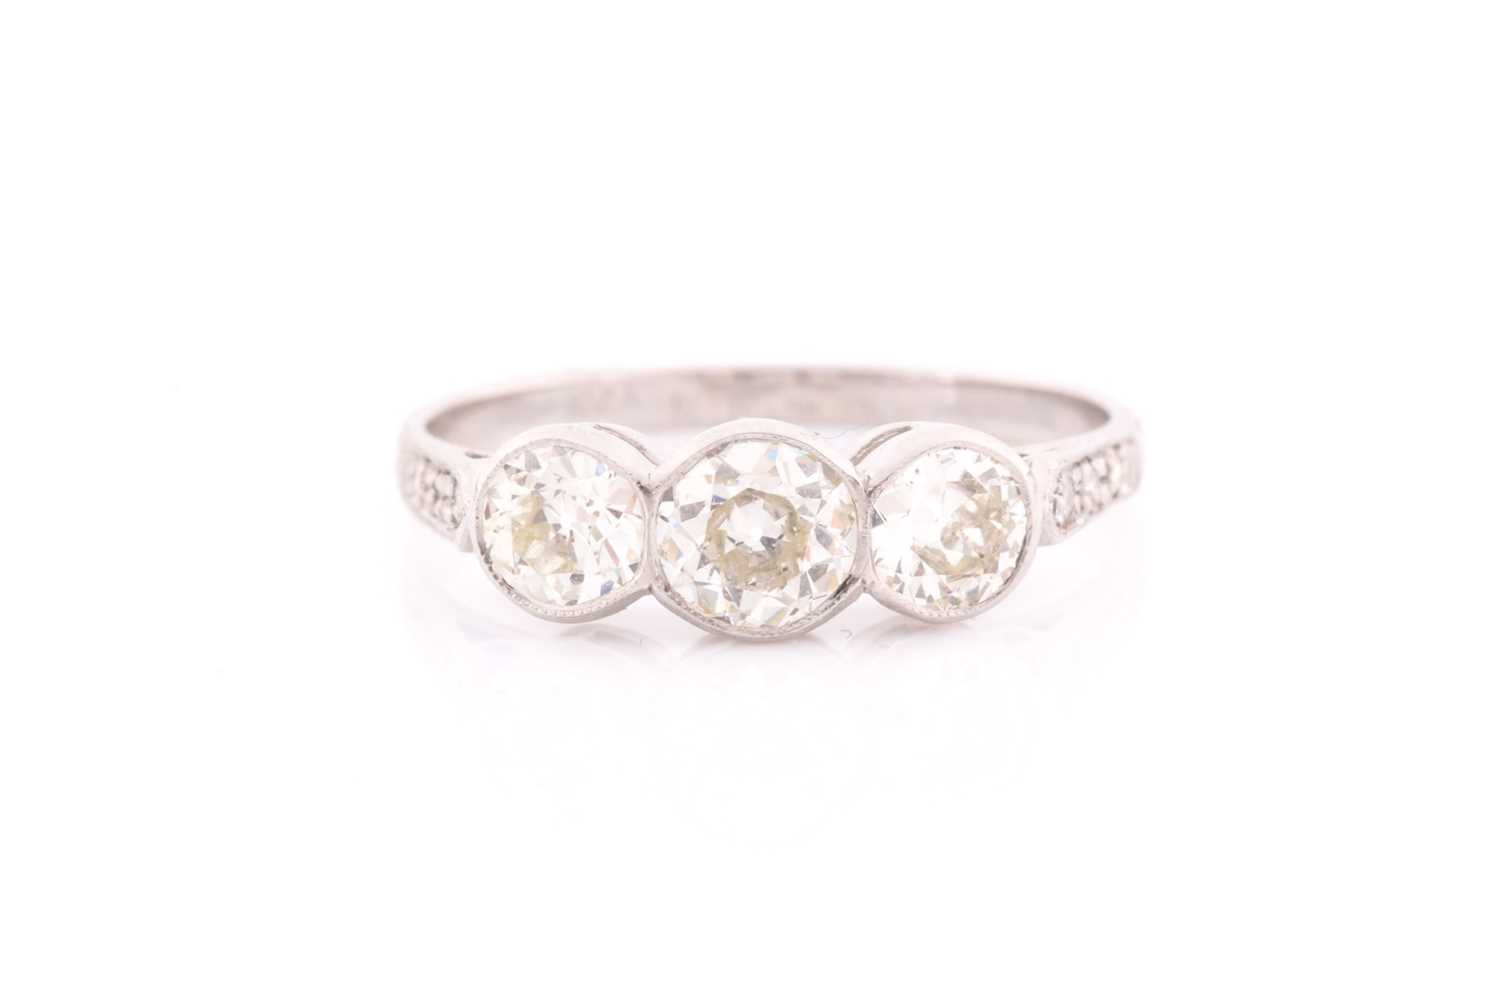 A platinum and diamond ring, collet-set with three old round-cut diamonds of approximately 1.35